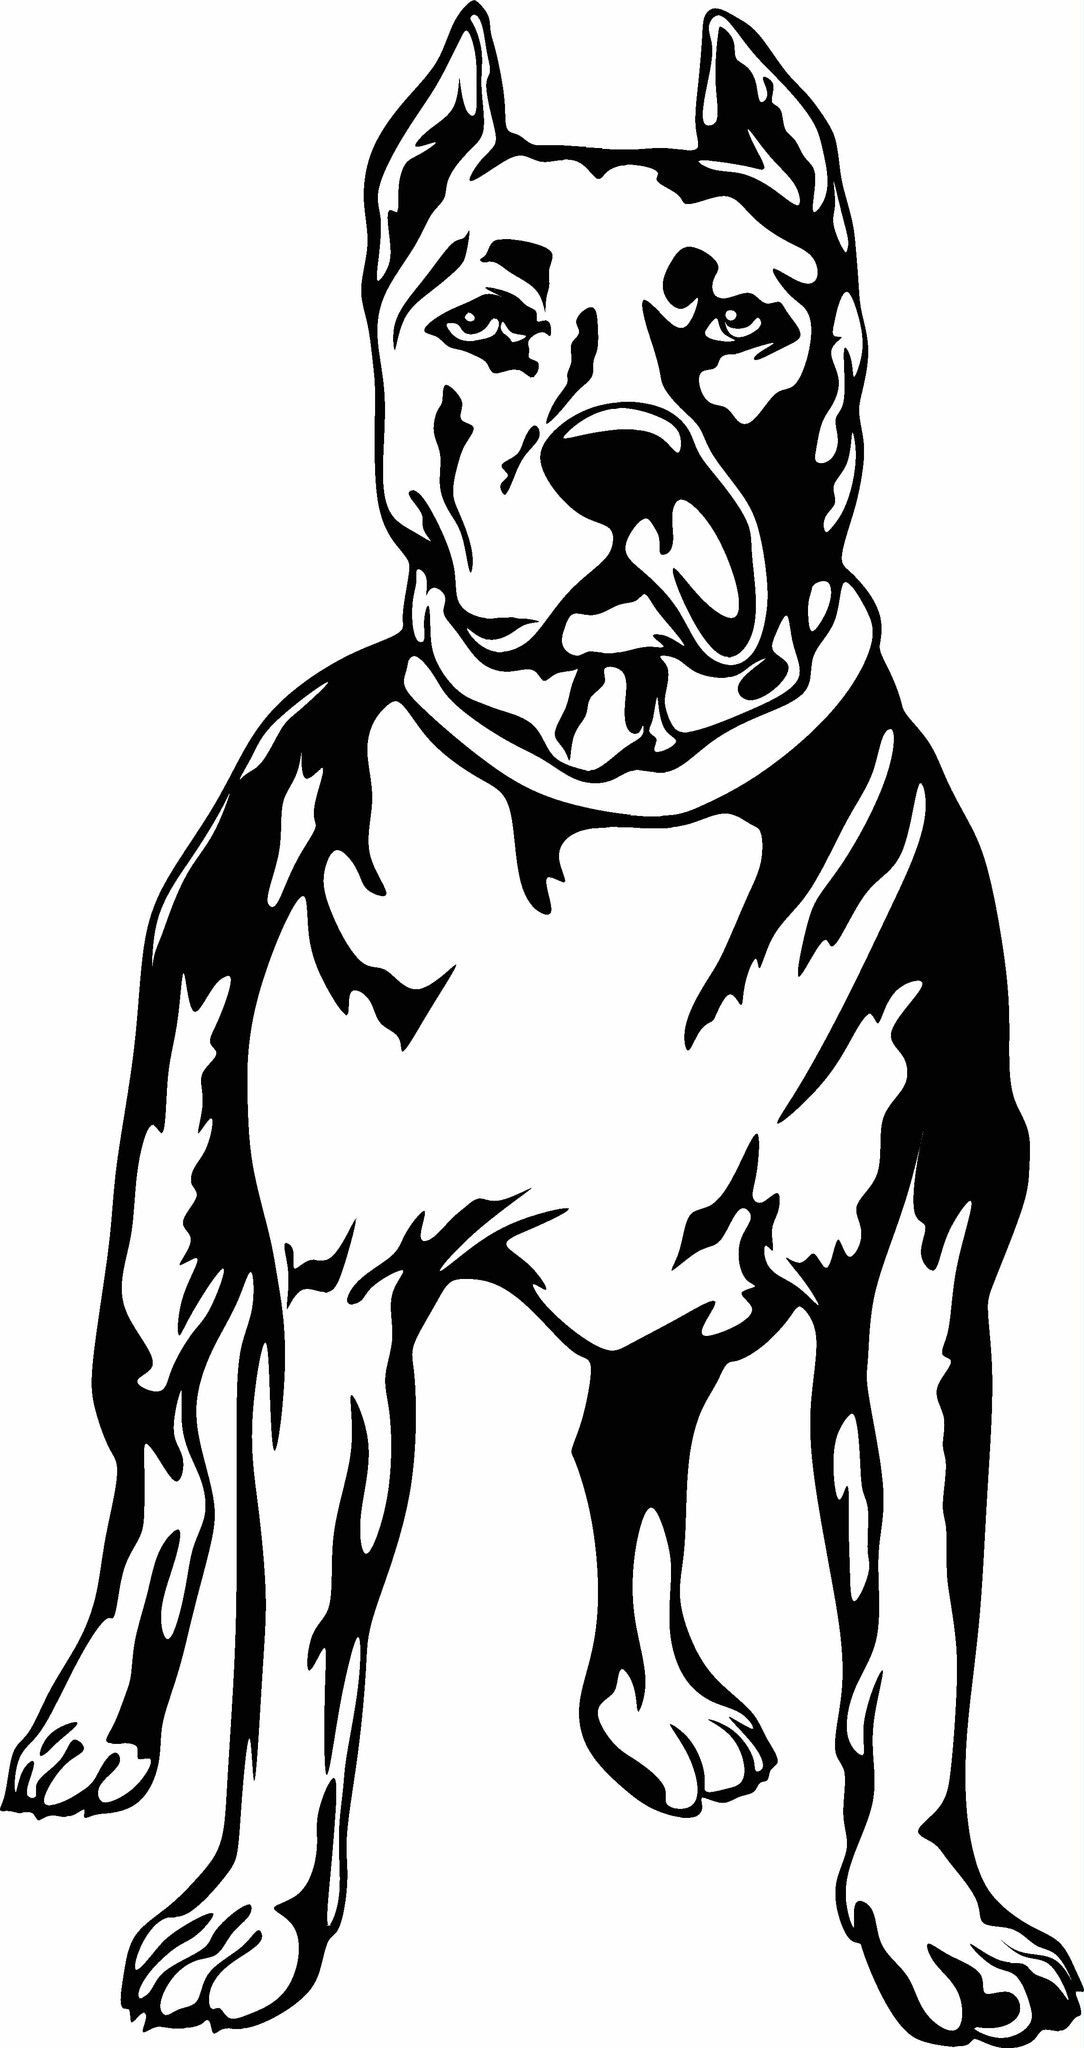 Pit Bull Standing Vinyl Cut Out Decal Sticker